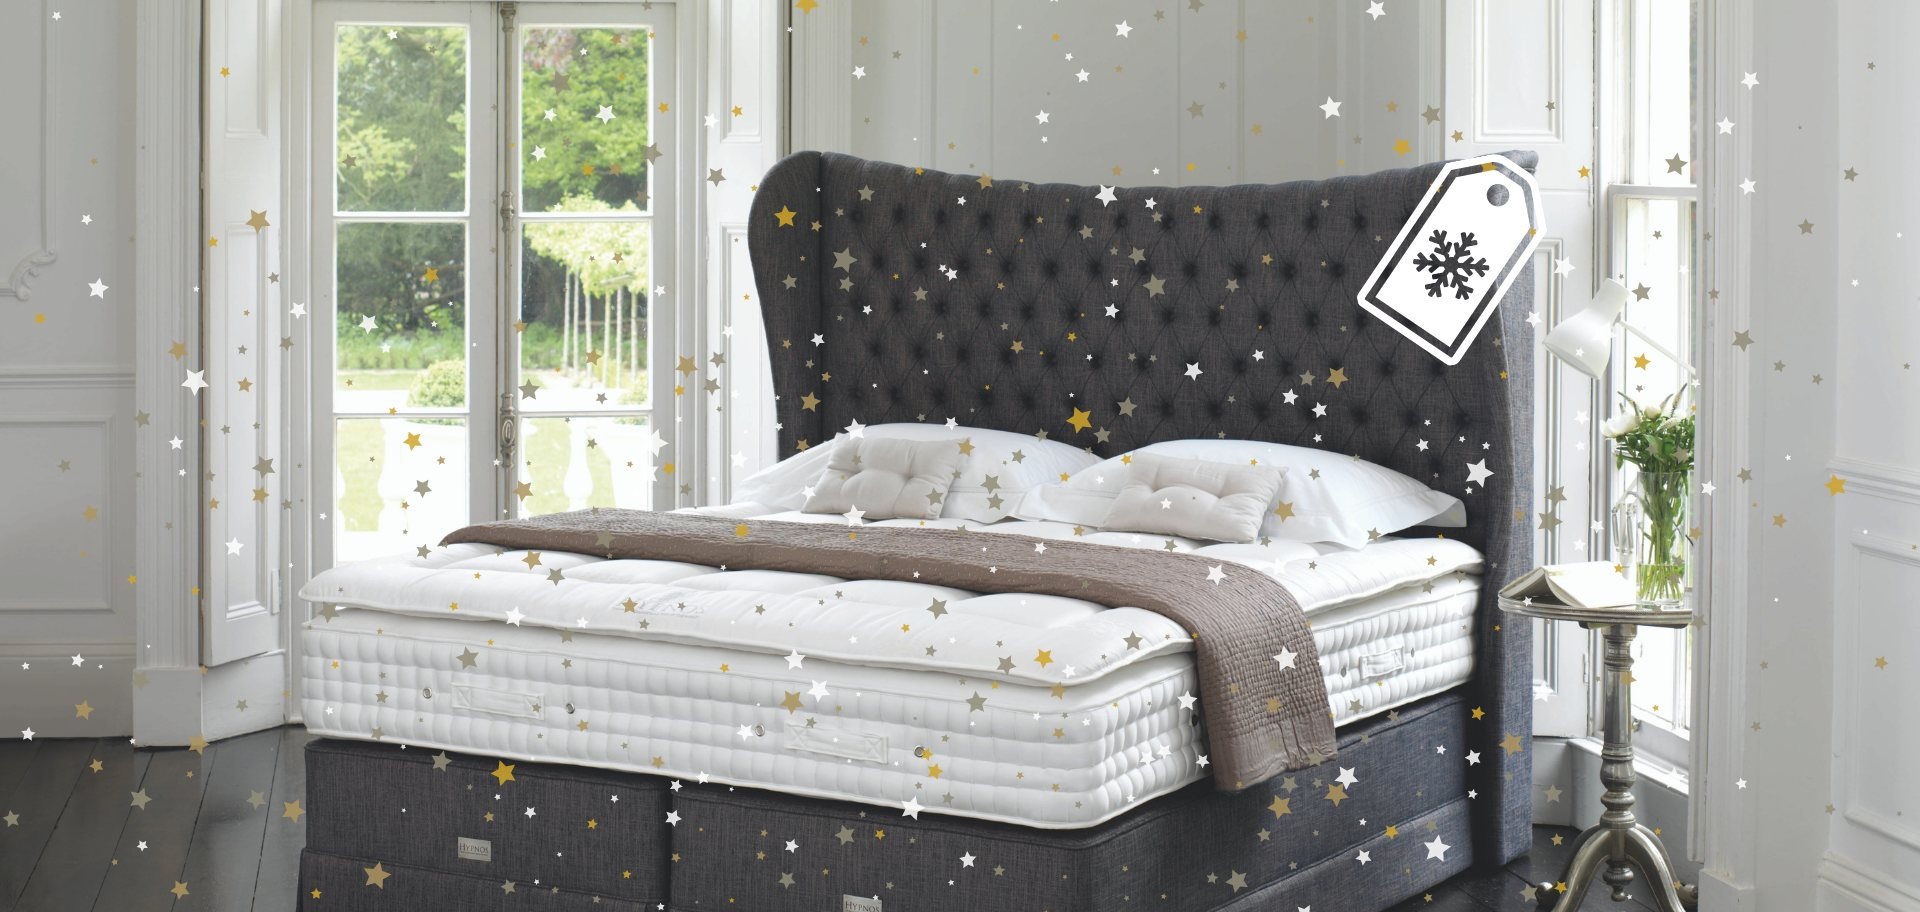 Save up to 40% on Hypnos Beds, Mattresses & Headboards